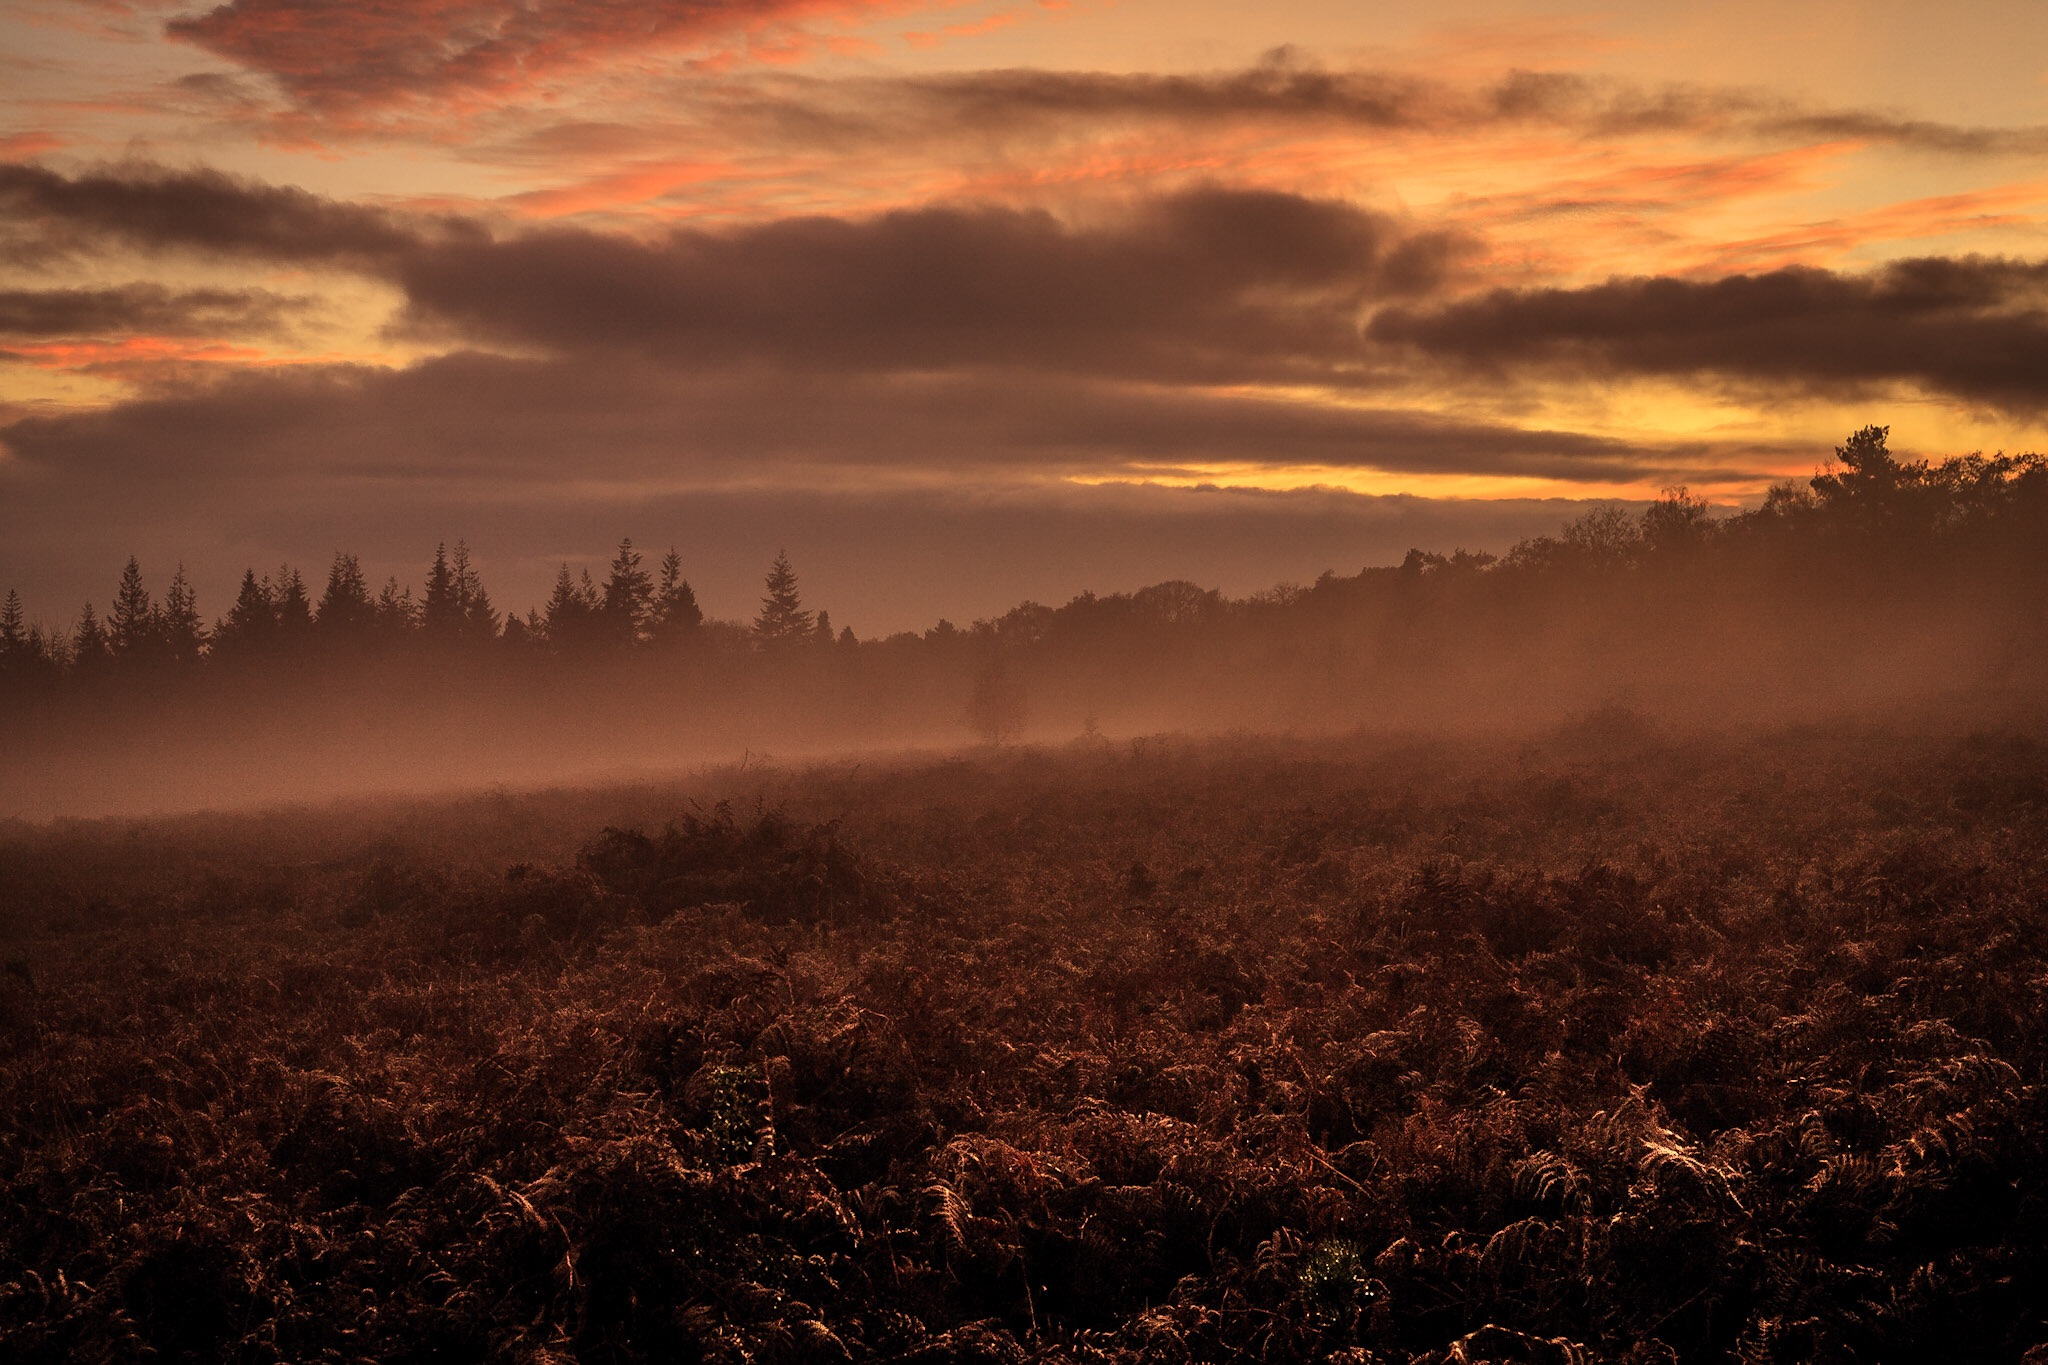 Misty sunset in the New Forest